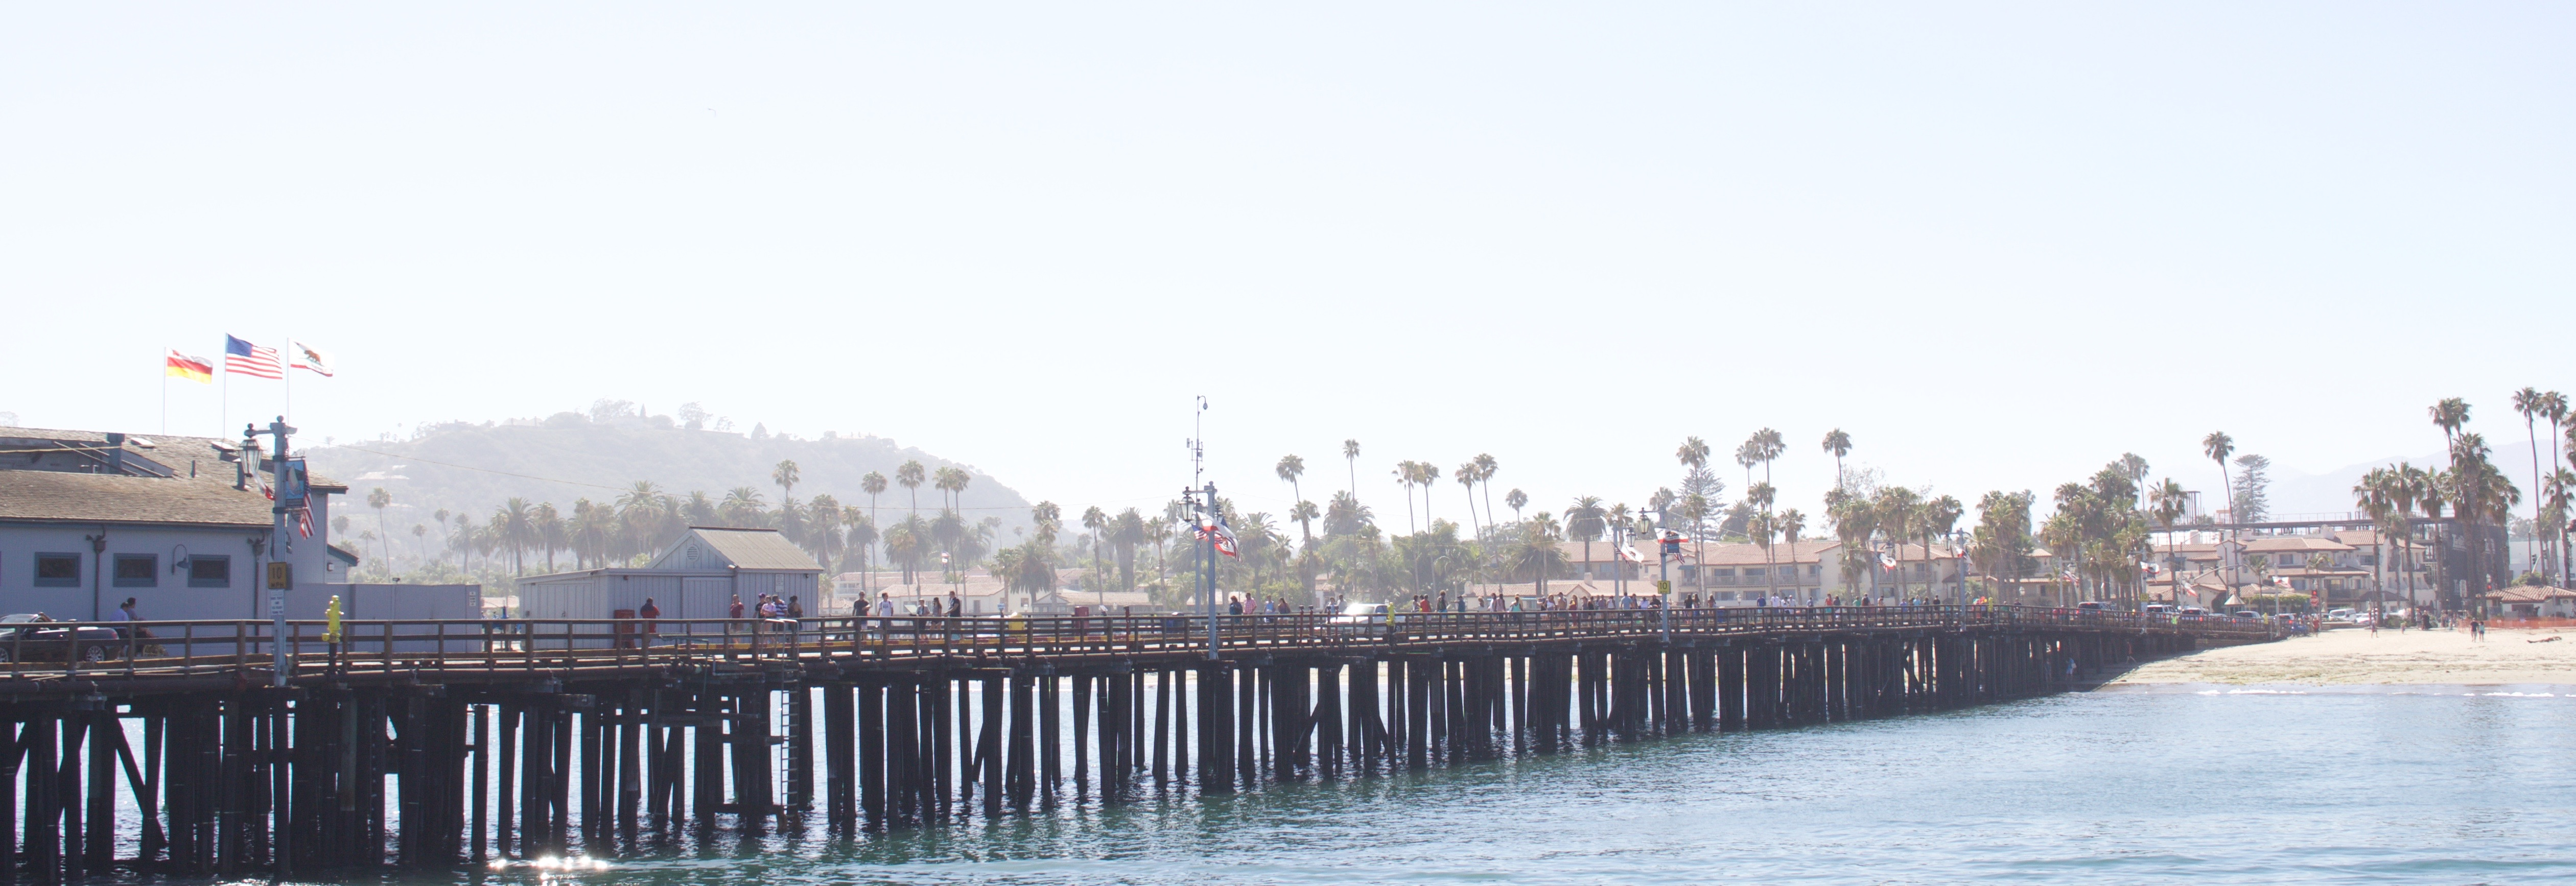 Santa Barbara, California day trip - Stearns Wharf - My Styled Life